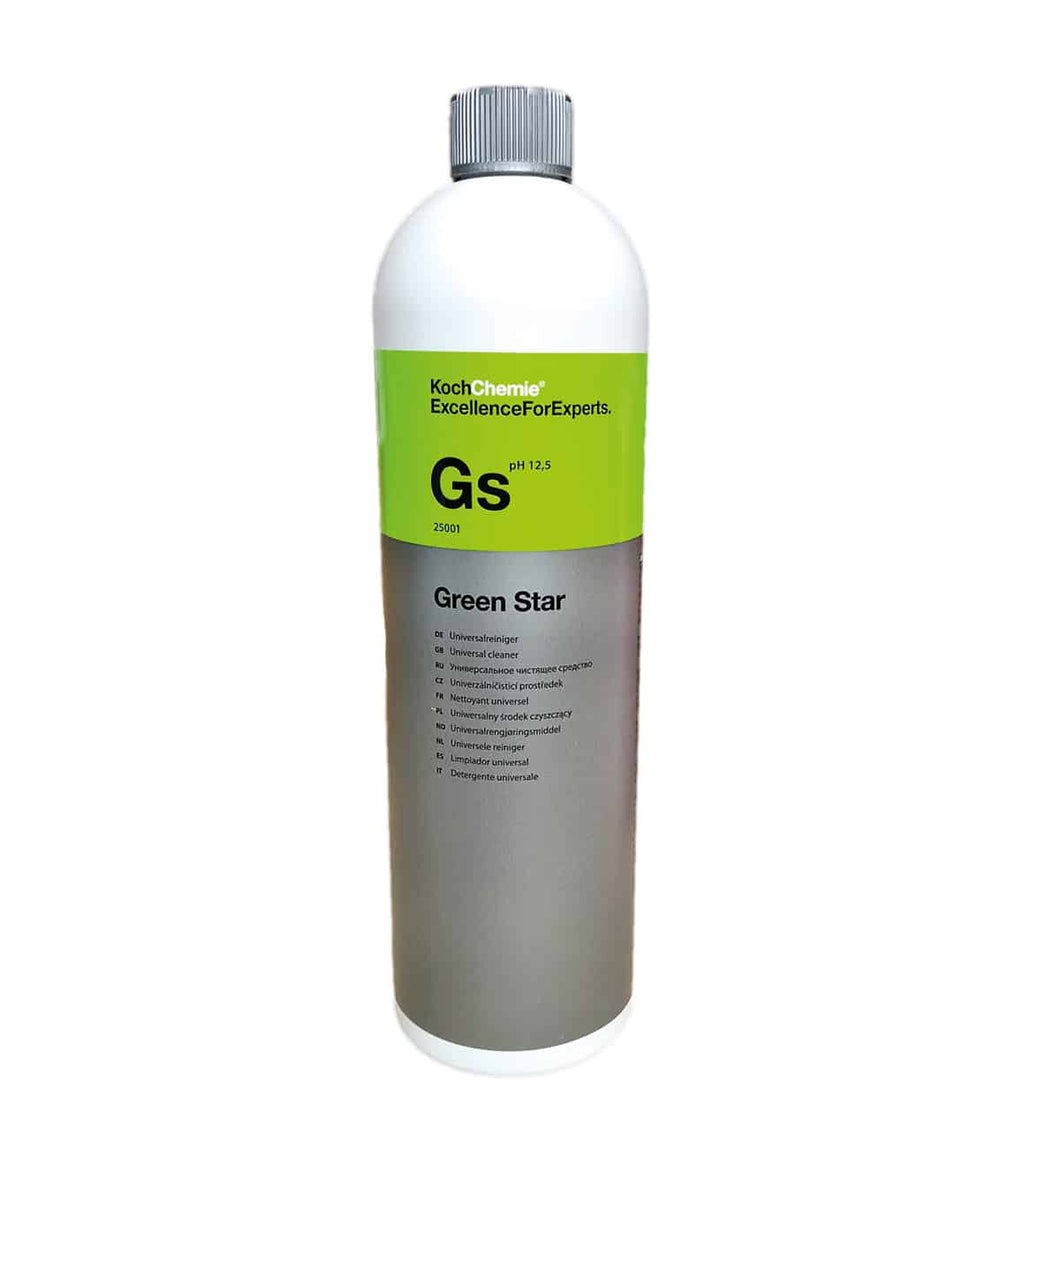 Koch Chemie GS Green Star Universal Cleaner 1000 ml